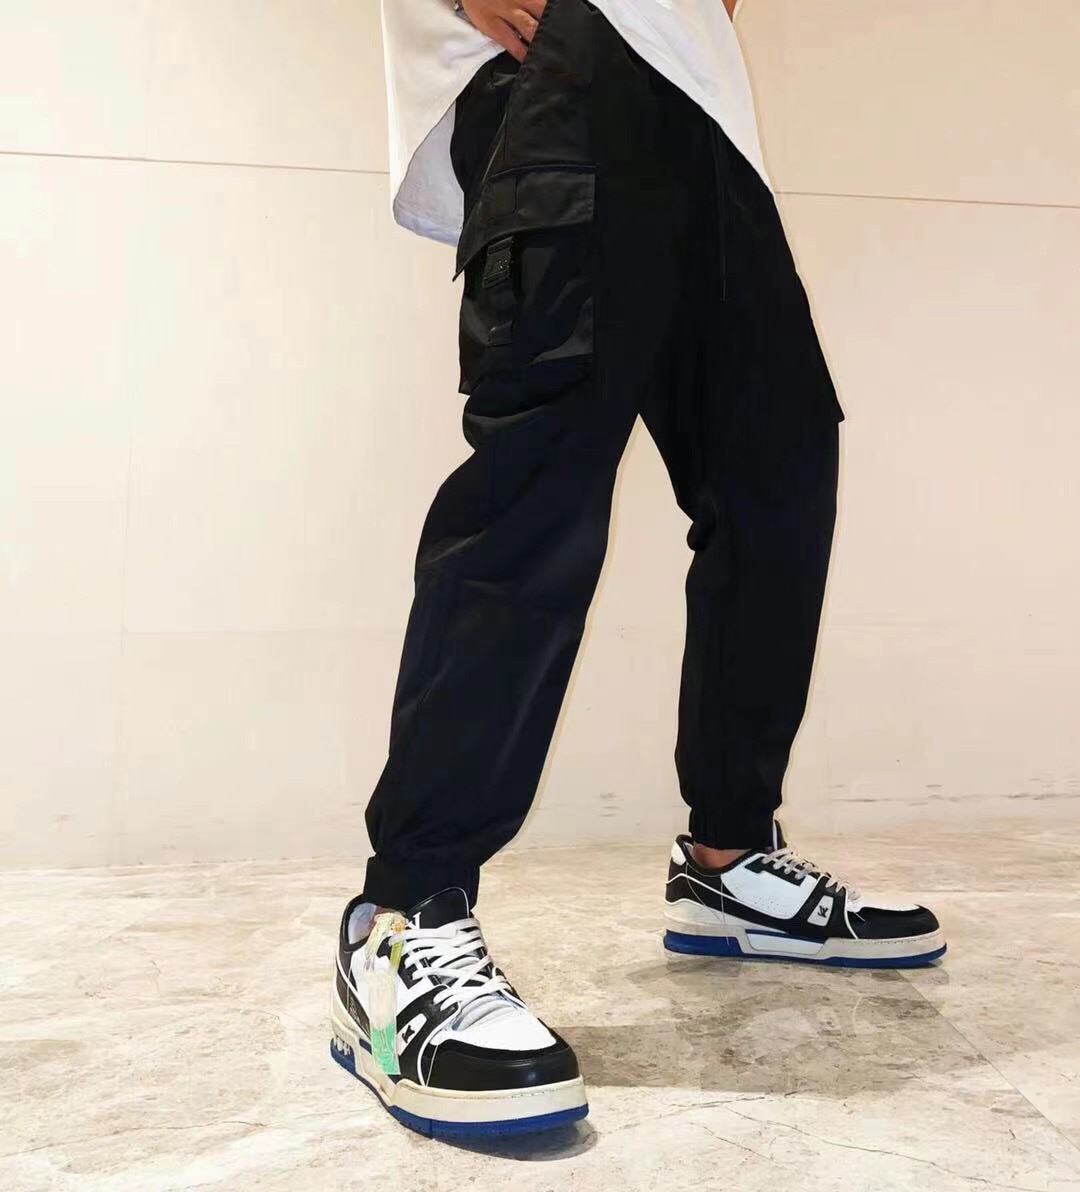 With logo Men's sweatpants Fashion all-match Breathable Comfortable Solid color Pure cotton casual pants Sports running Loose